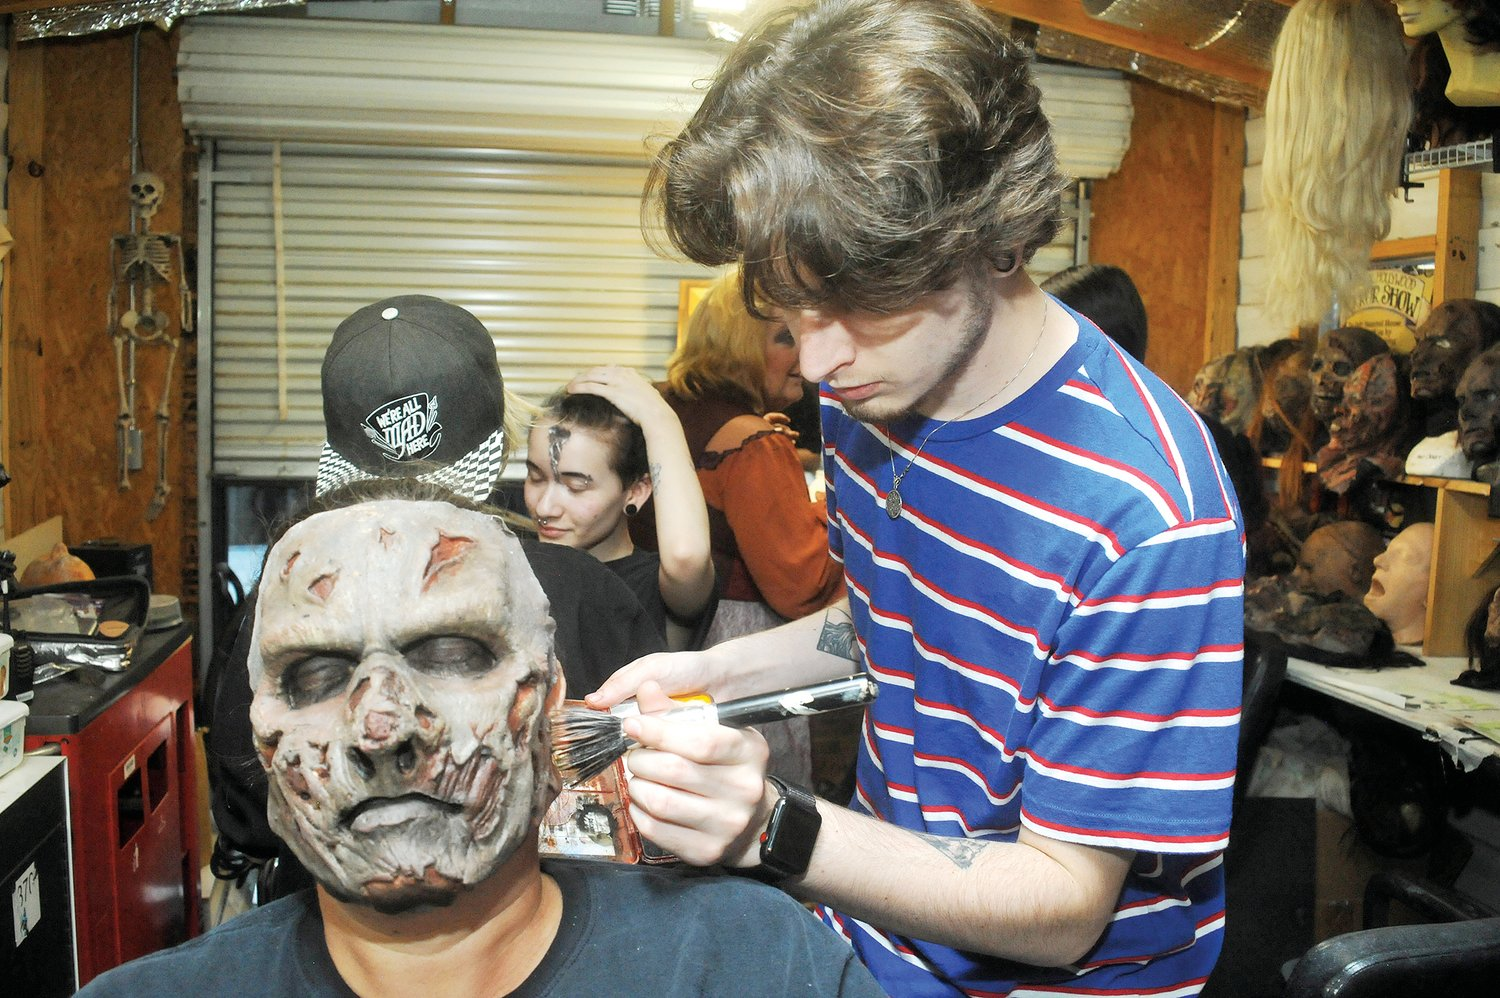 Amy Mabe gets a few final touches with a brush as she is transformed into a zombie by makeup artist Tyler Wood in preparation last Friday for the Original Hollywood Horror Show.